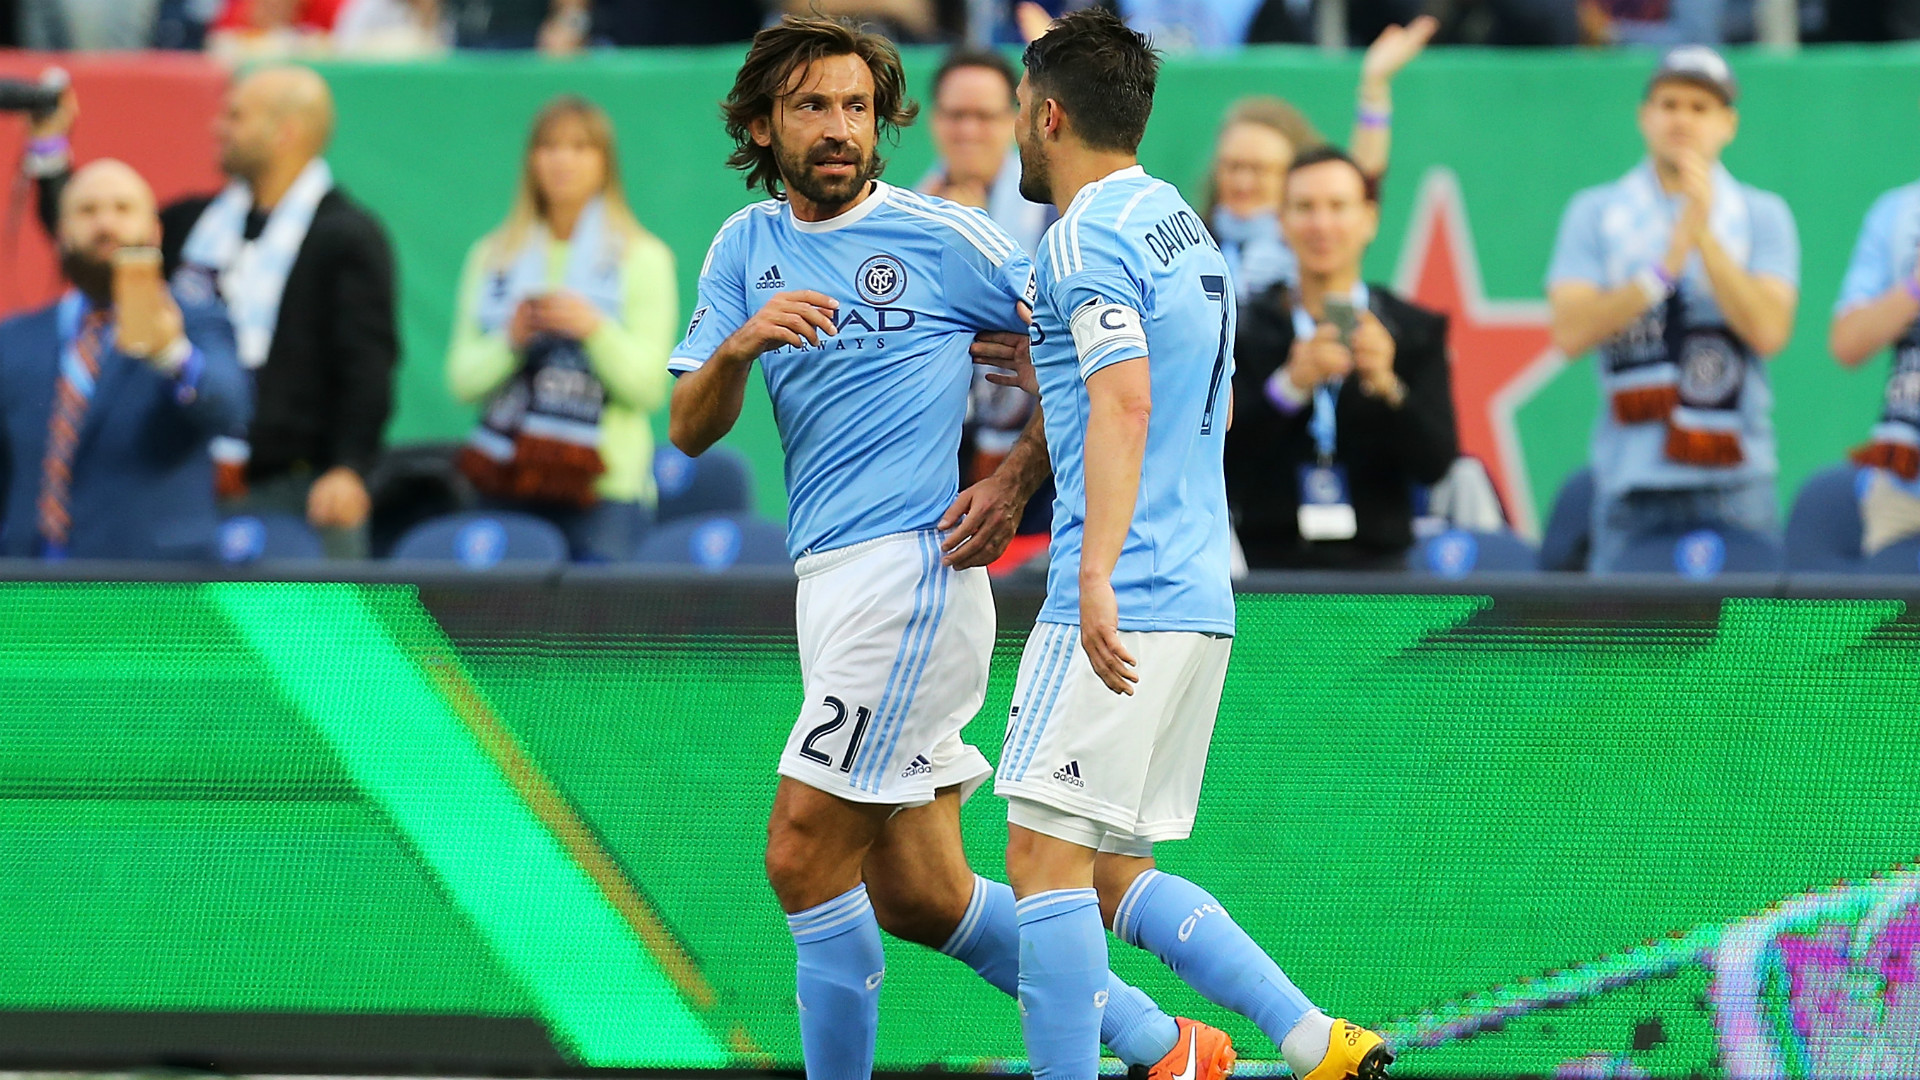 MLS: Villa wonder goal as NYCFC cruise